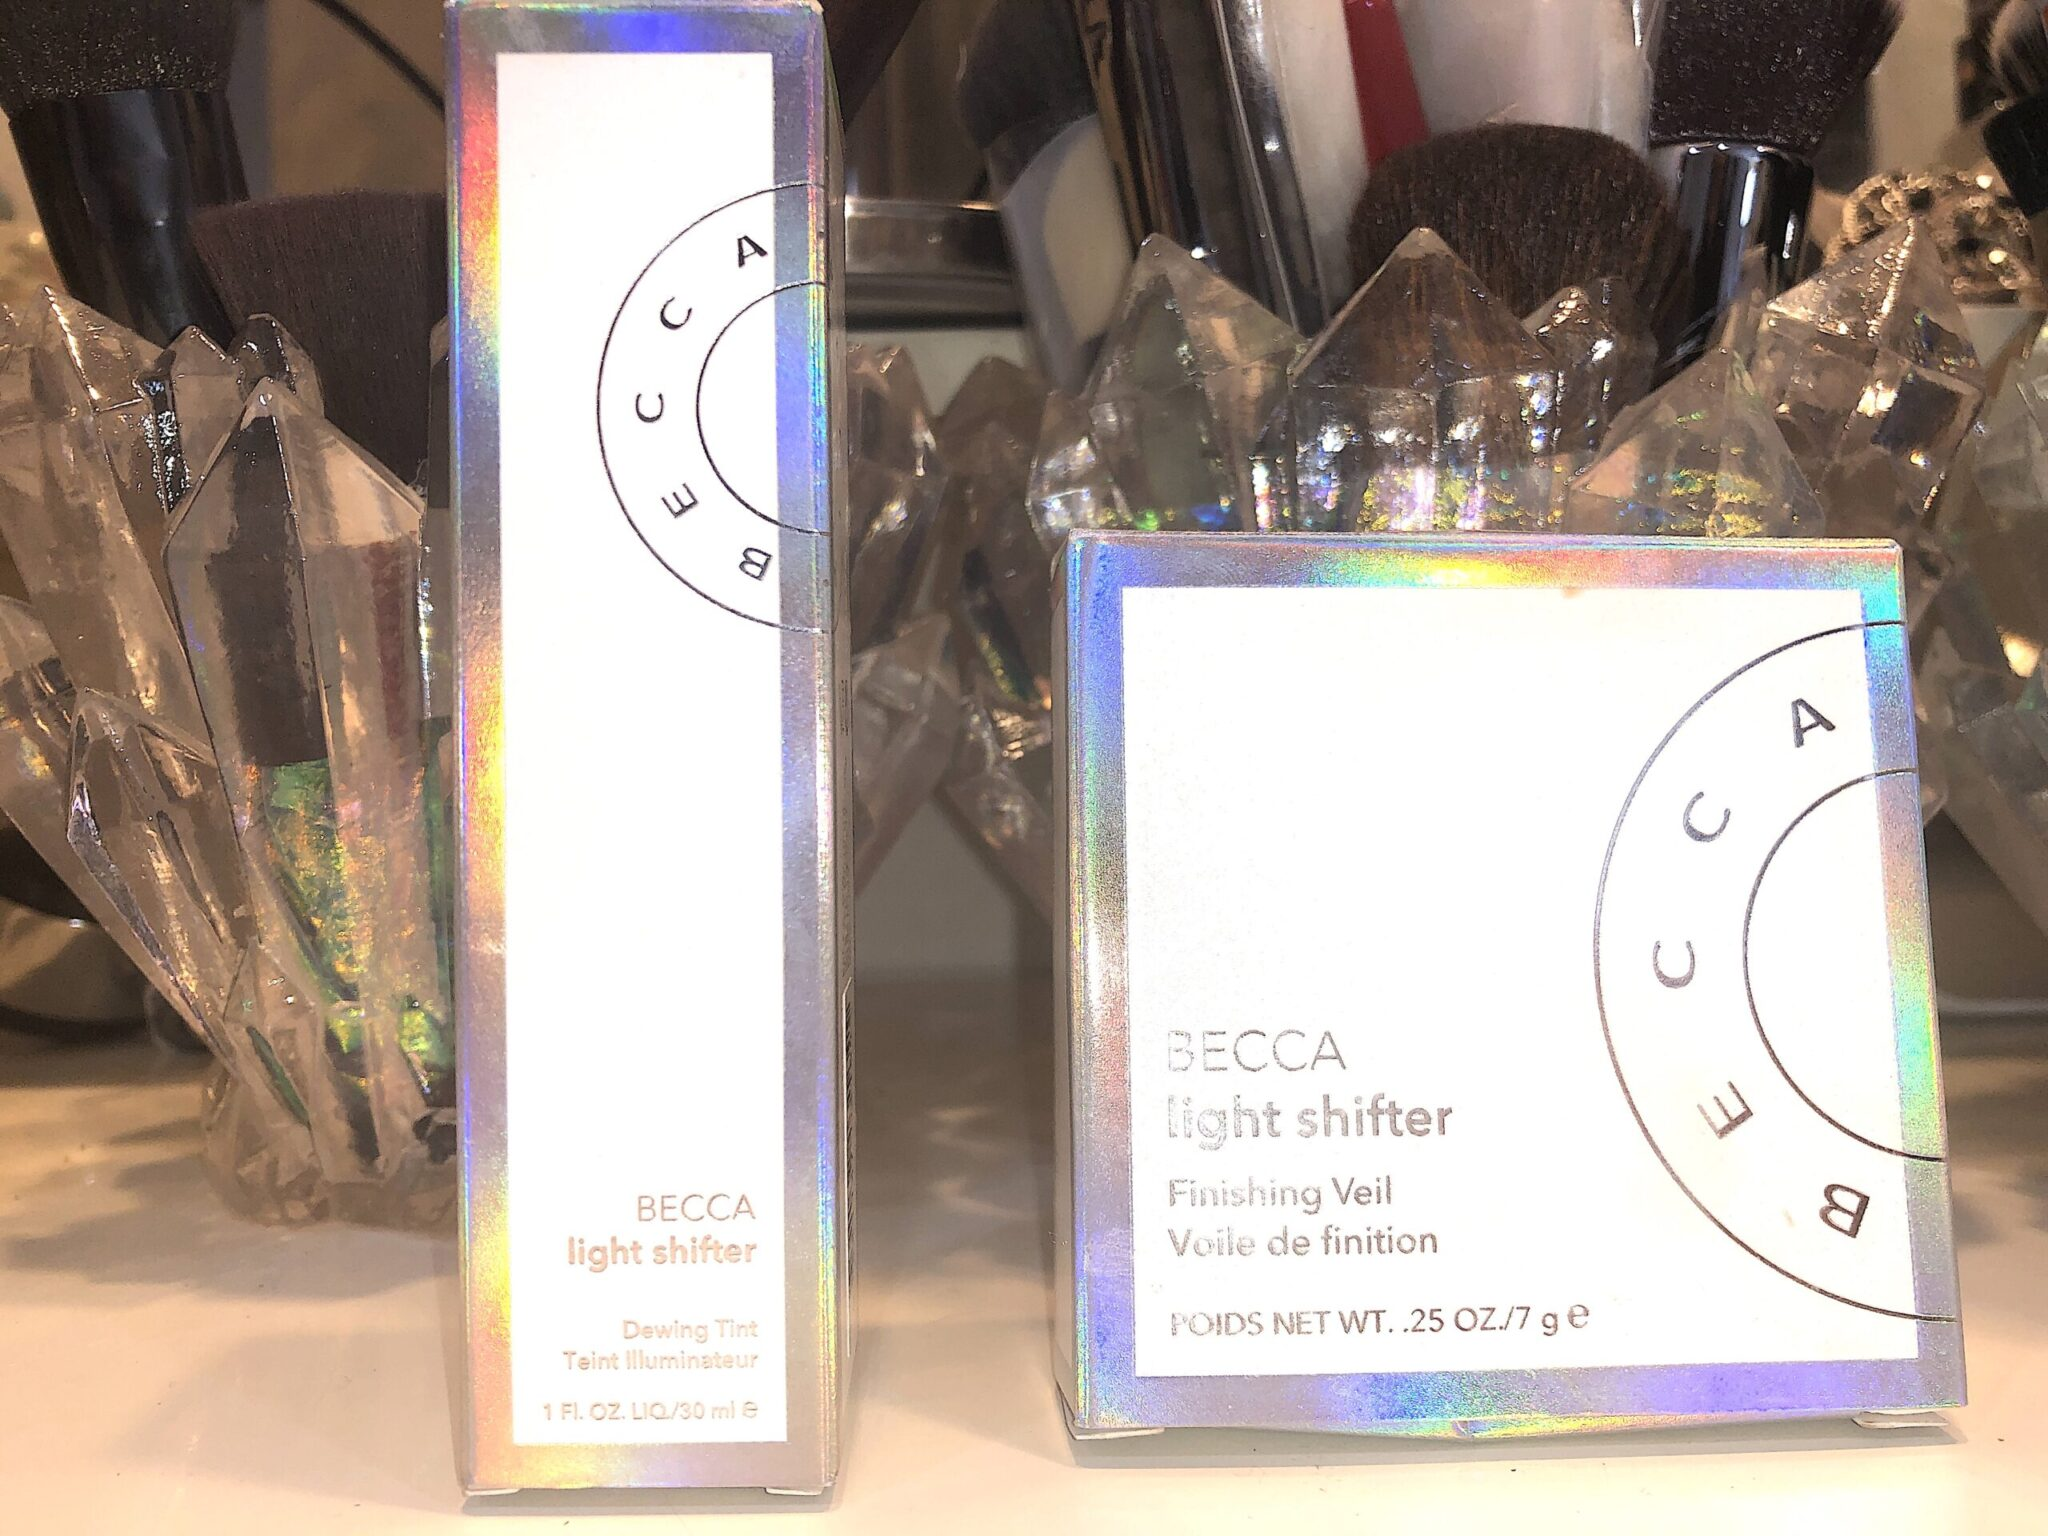 Becca LIght Shifter Outer Boxes